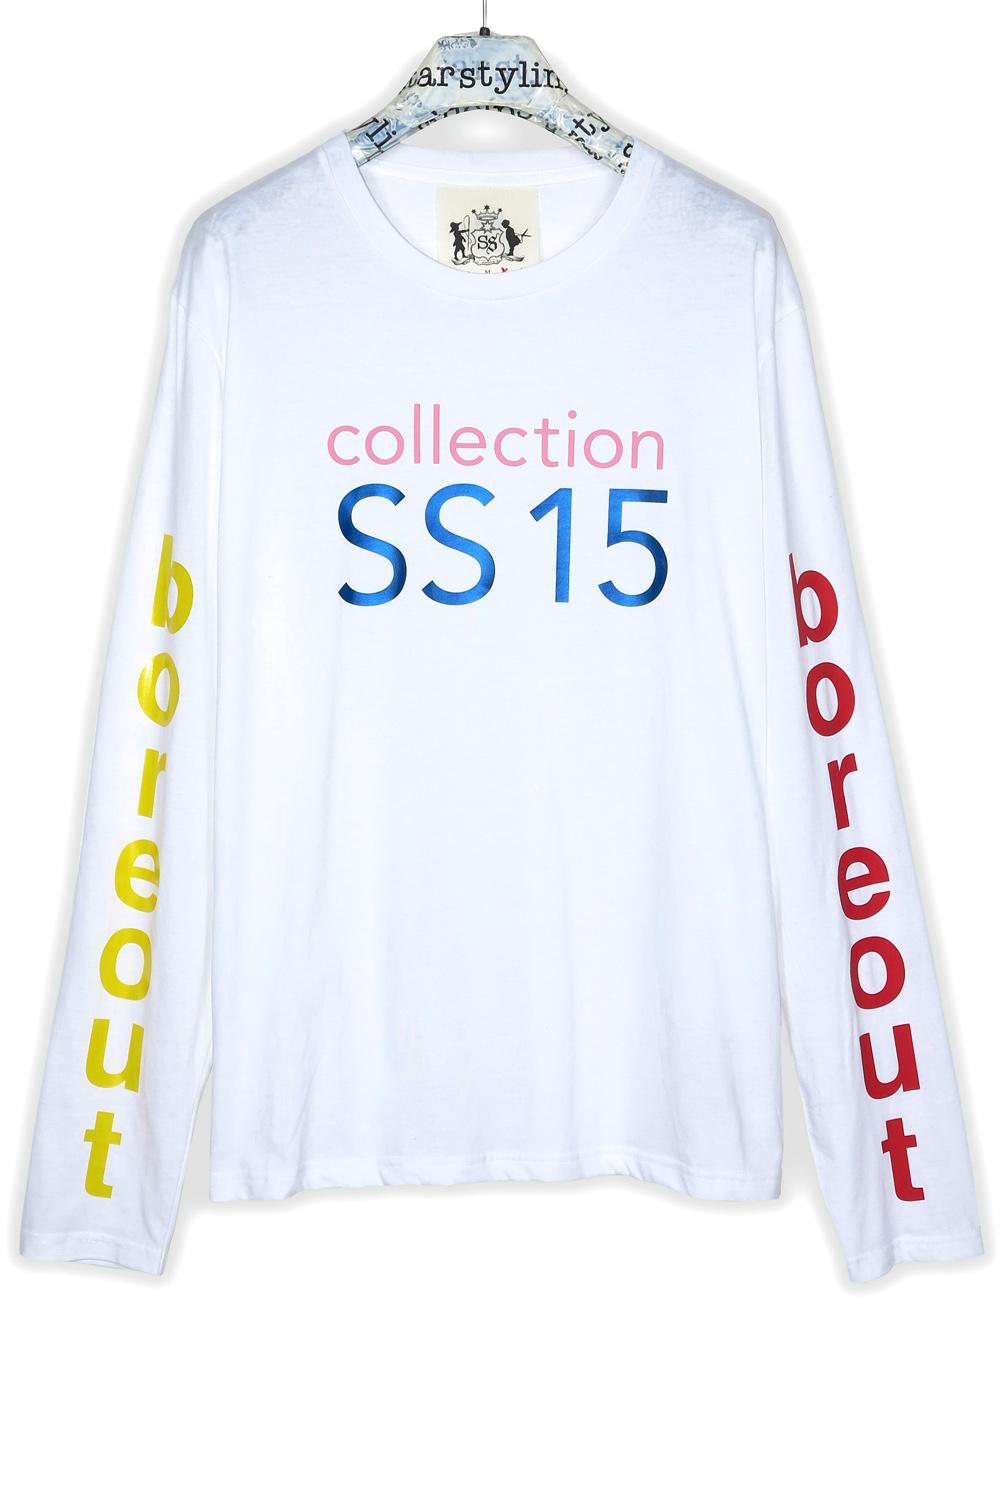 COLLECTION LONGSLEEVE - 0